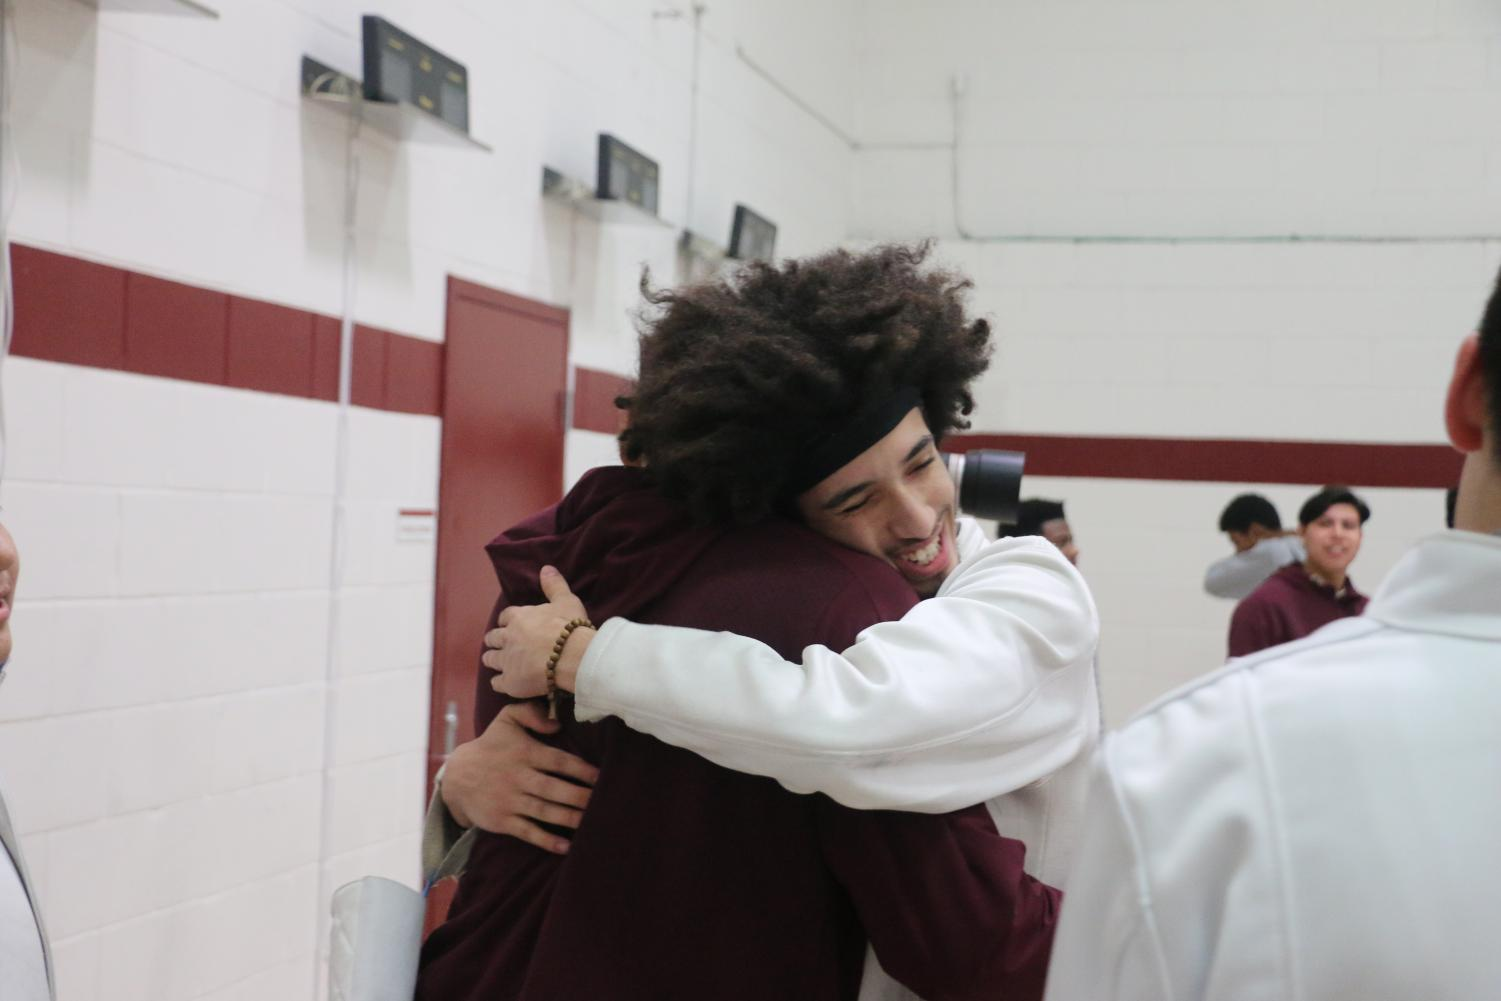 Fencing captains Marc Urquilla '19 and Francisco Perez '19 celebrate a night to remember, their last night fencing at home.